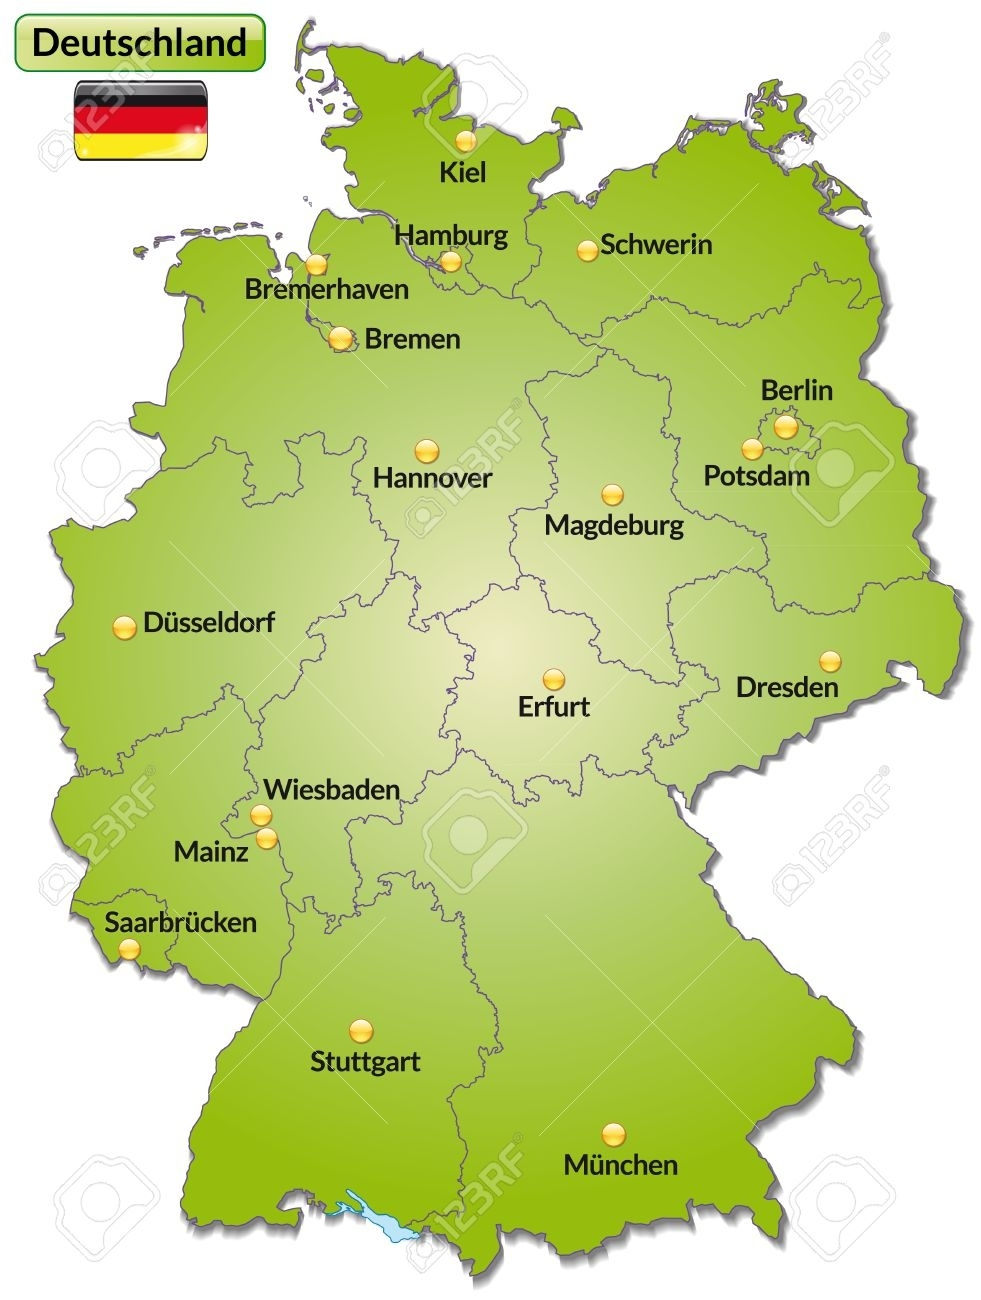 Map Of Germany With Main Cities In Green pertaining to Germany Map Main Cities